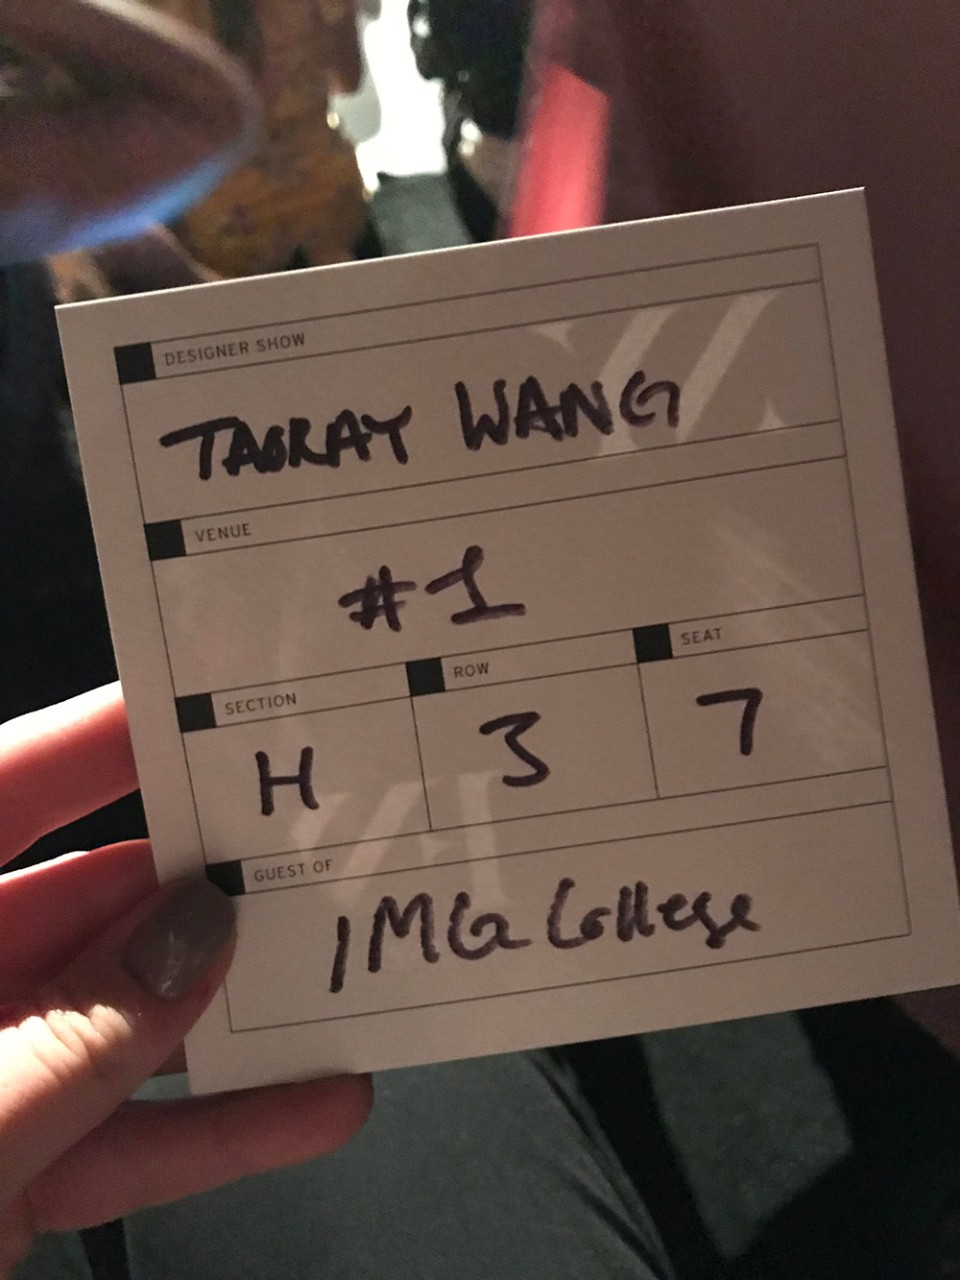 A white square pass to the Taoray Wan runway show at NYFW.